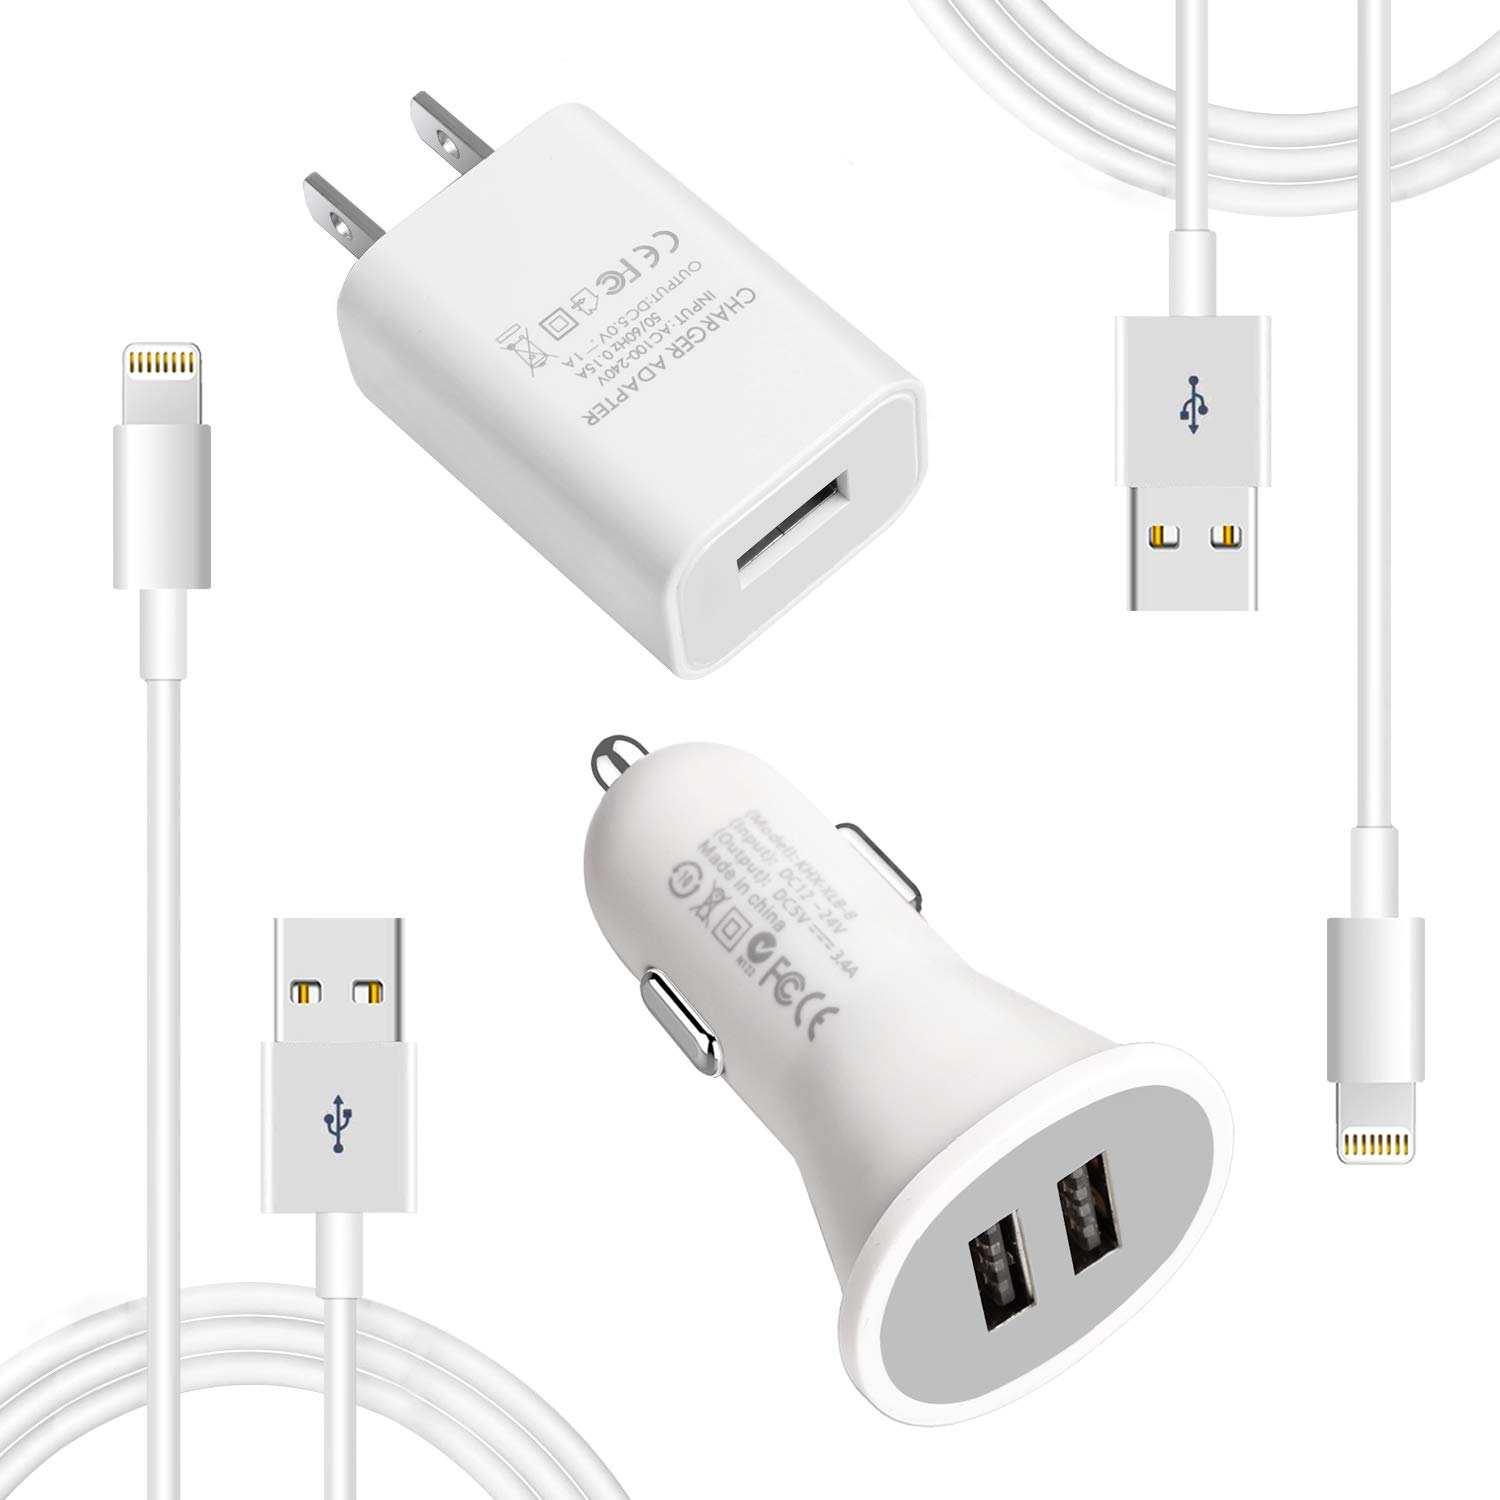 MFI Certified Wall & iPhone car Charger, Lightning Car Charger Cable kit for iPhone 7/7plus/8/8plus/xs/xsmax/xr 4 Pack (White)